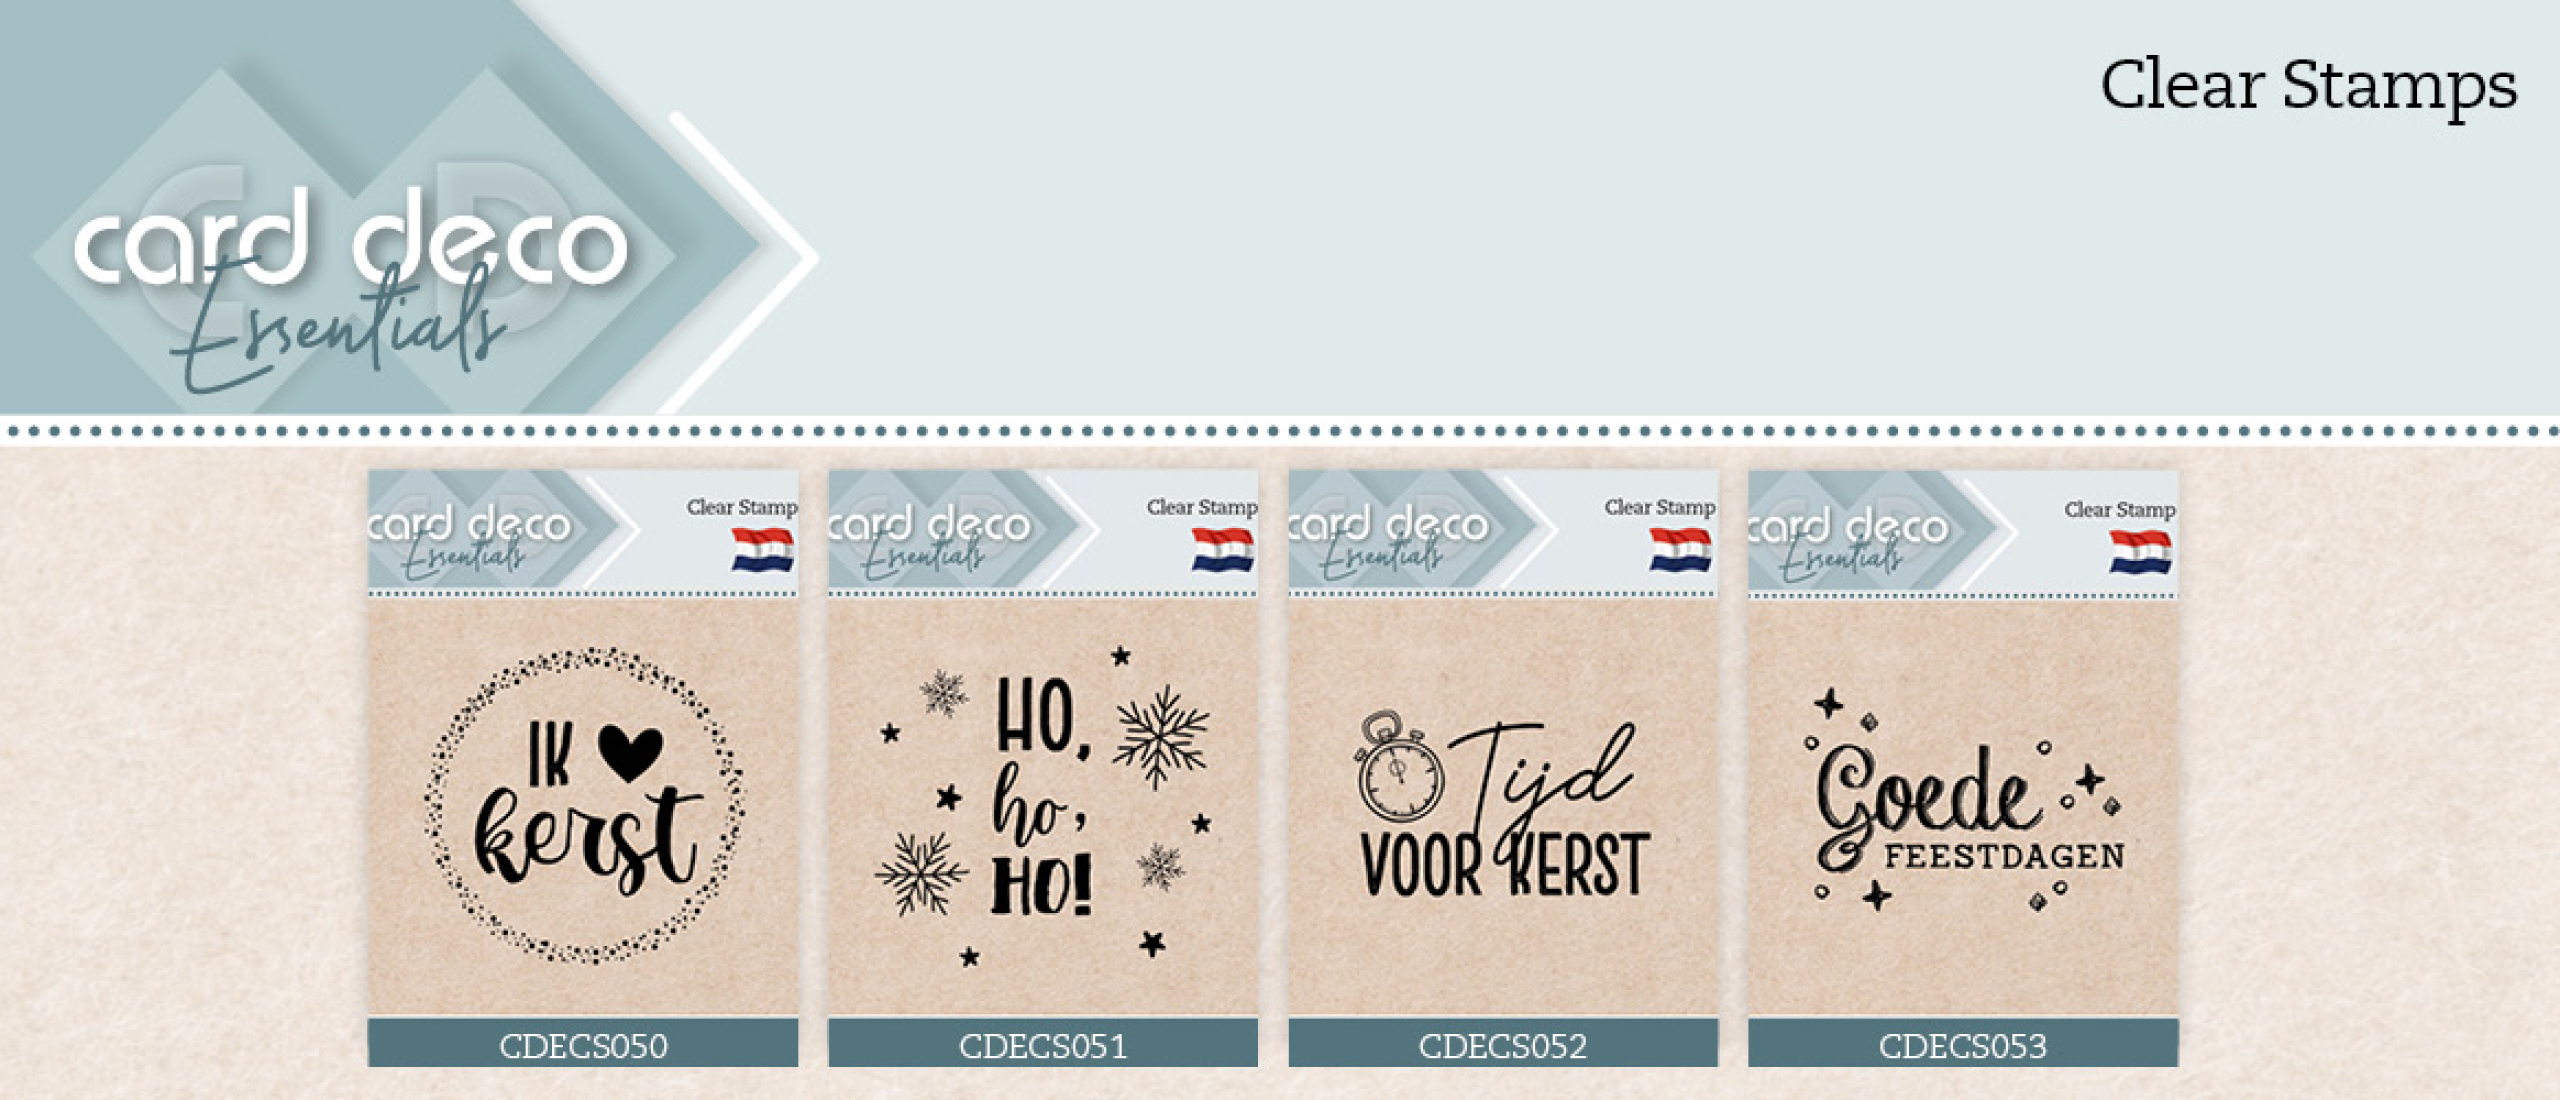 Clear Stamps  CDECD50 t/m CDECD53 Card Deco Essentials